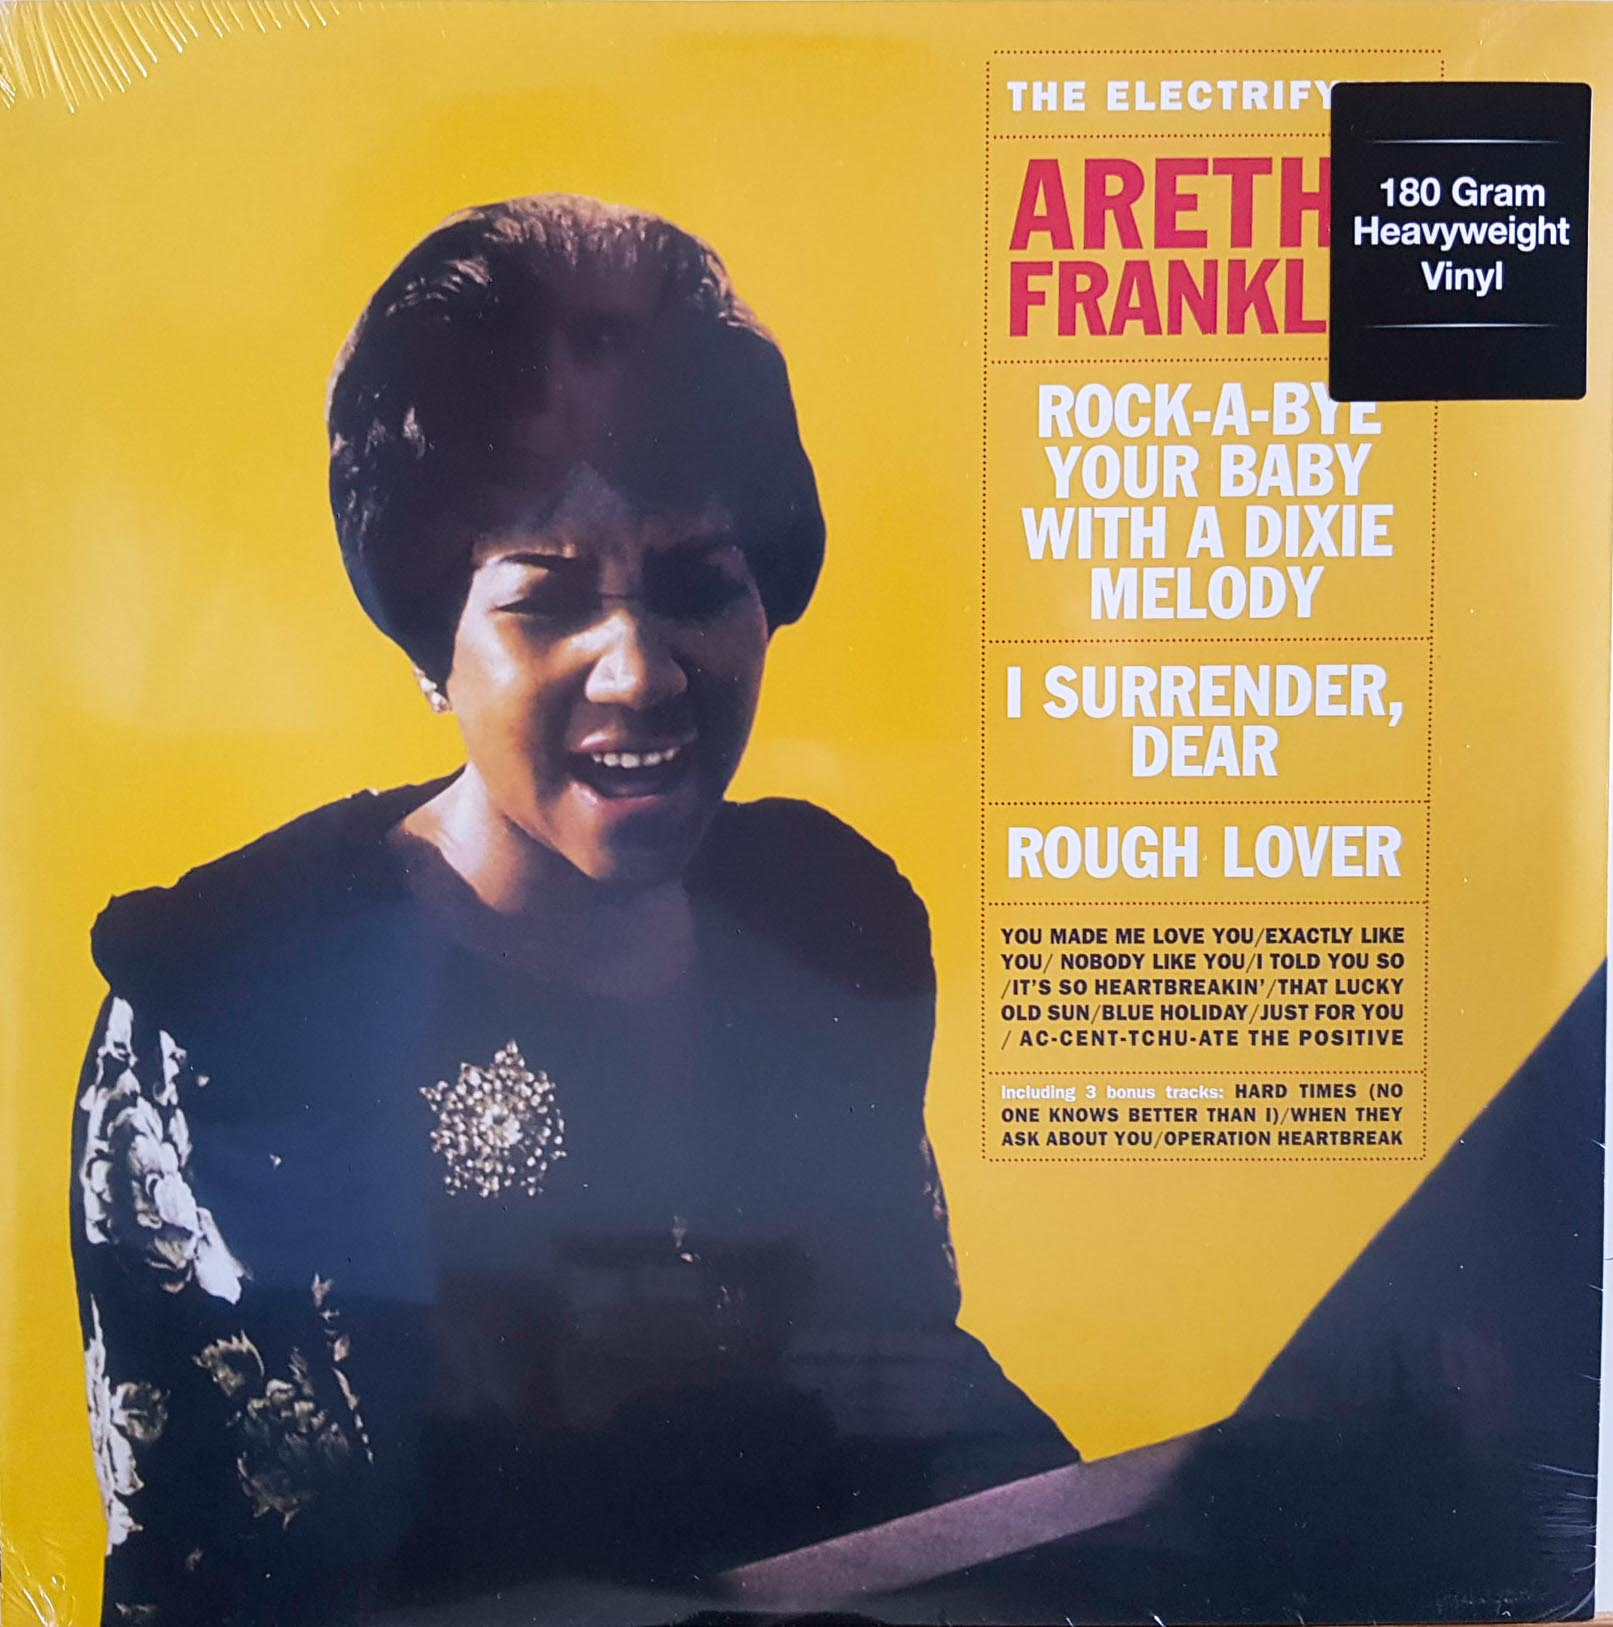 Lp Vinil Aretha Franklin The Electrifying